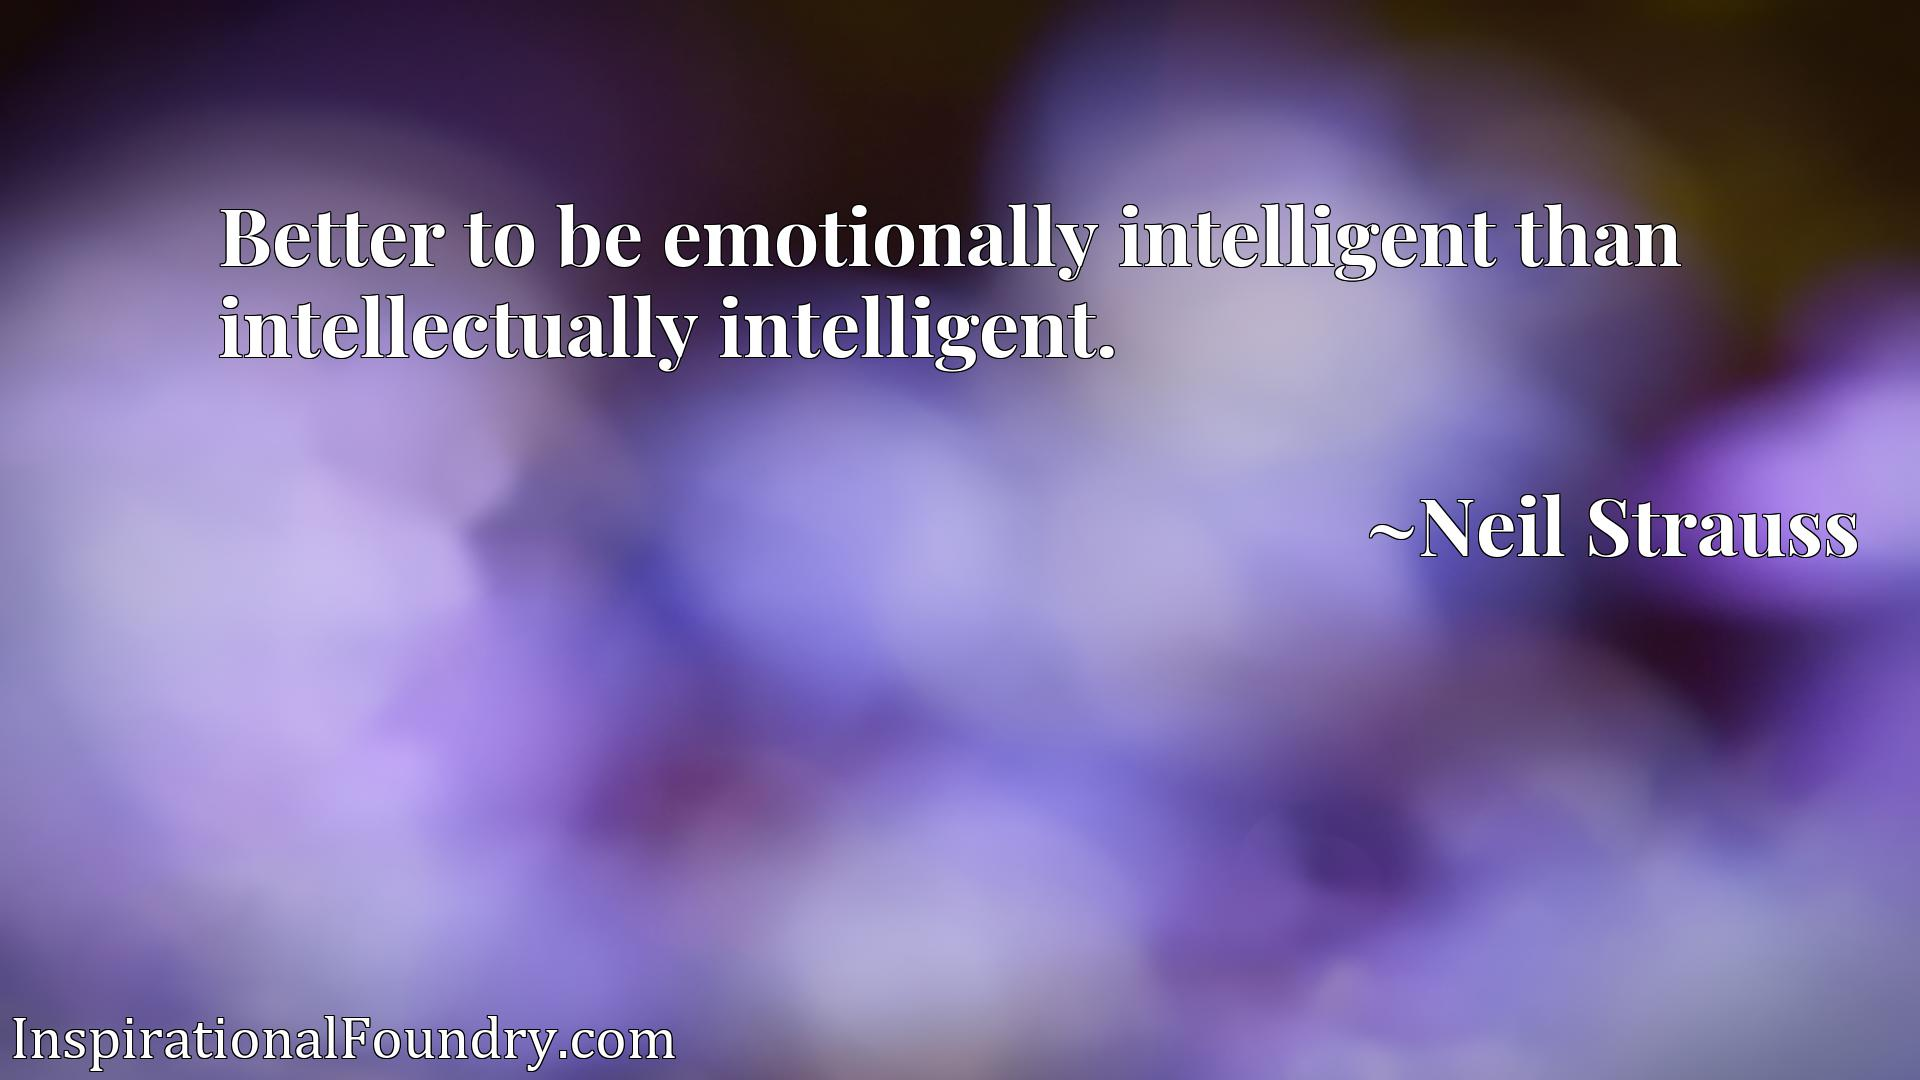 Better to be emotionally intelligent than intellectually intelligent.